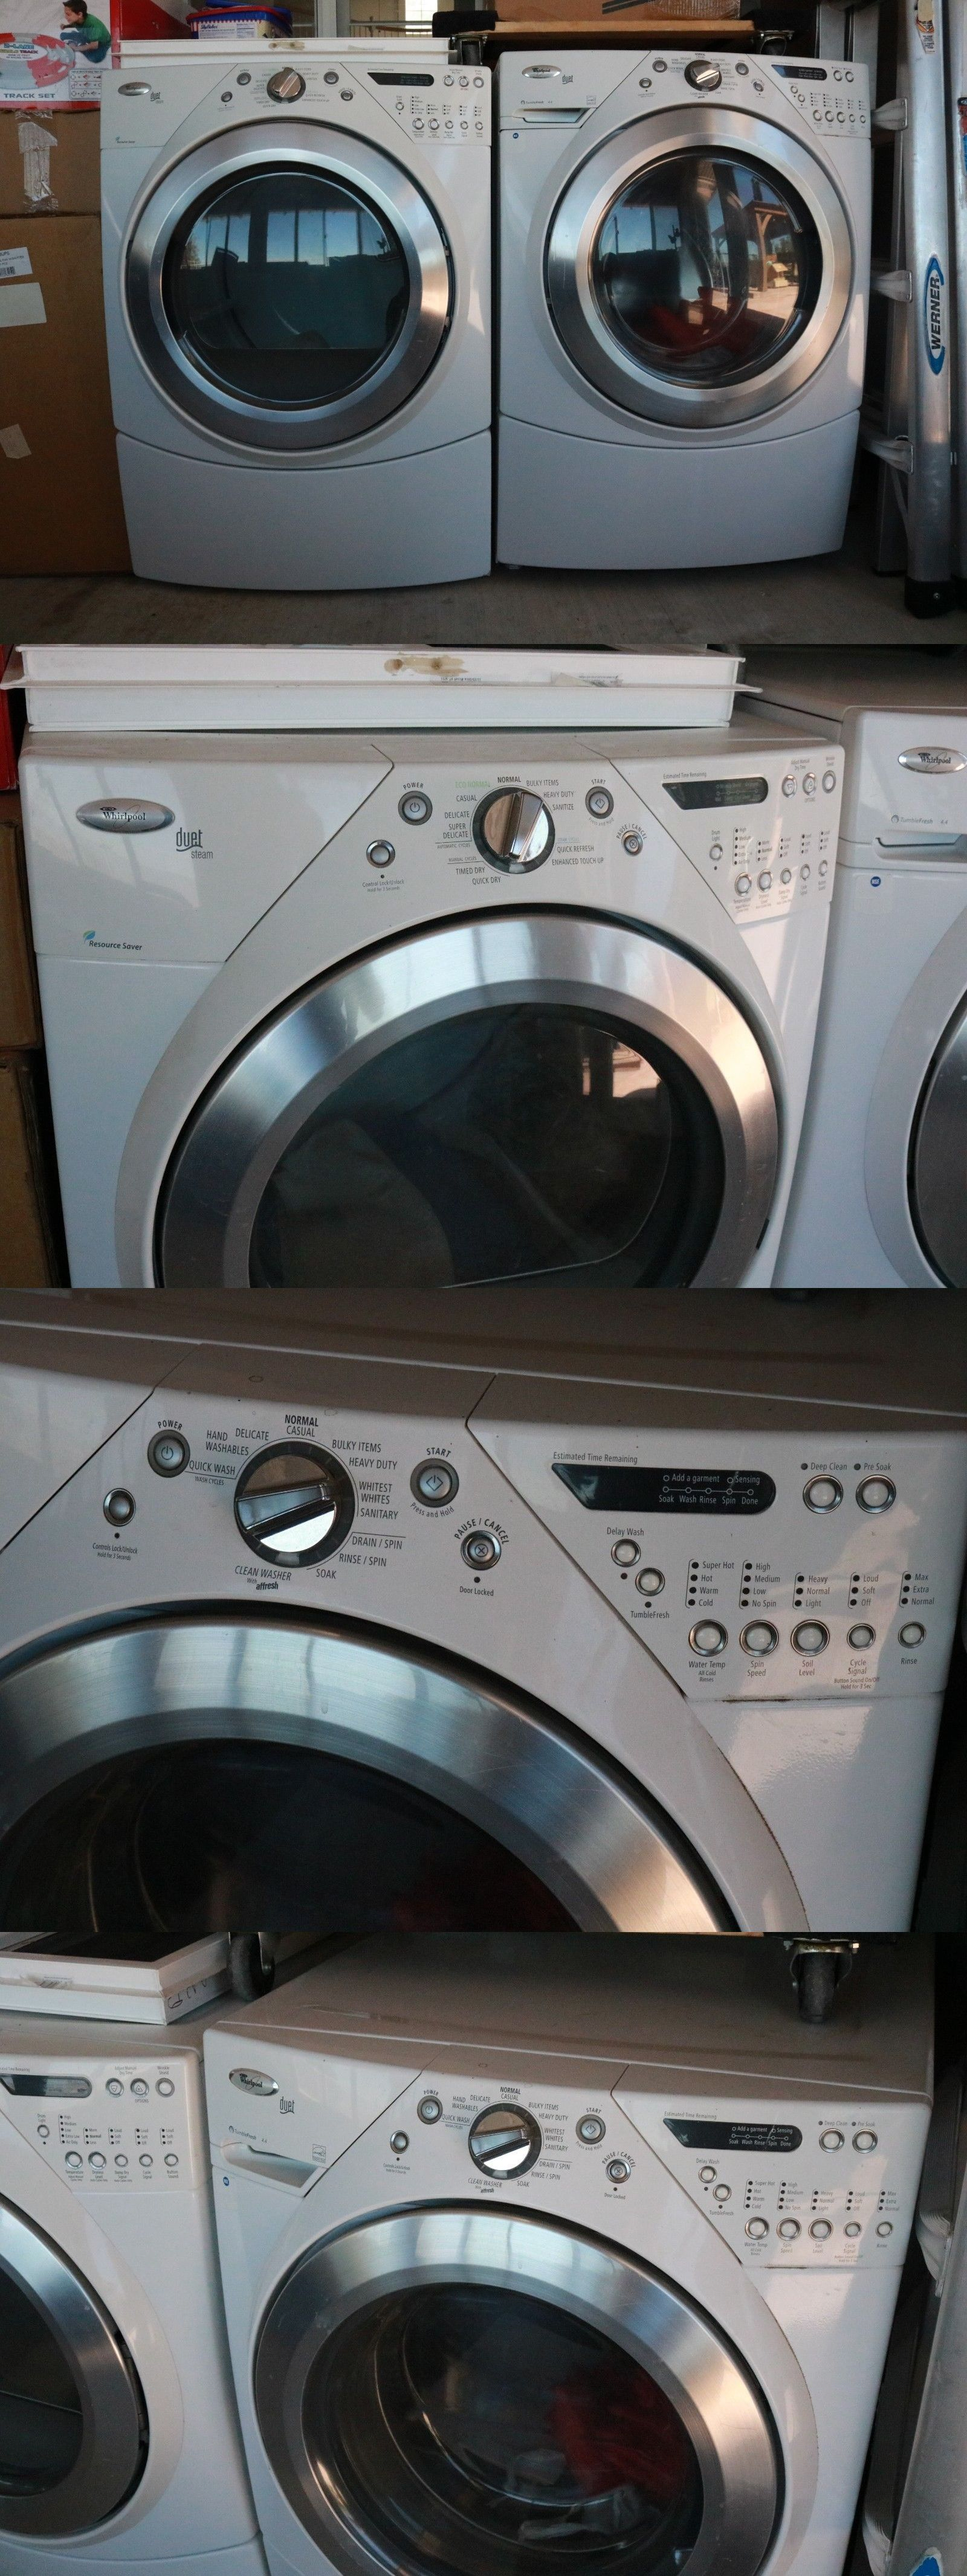 Washer Dryer Combinations and Sets 71257: Whirlpool Duet